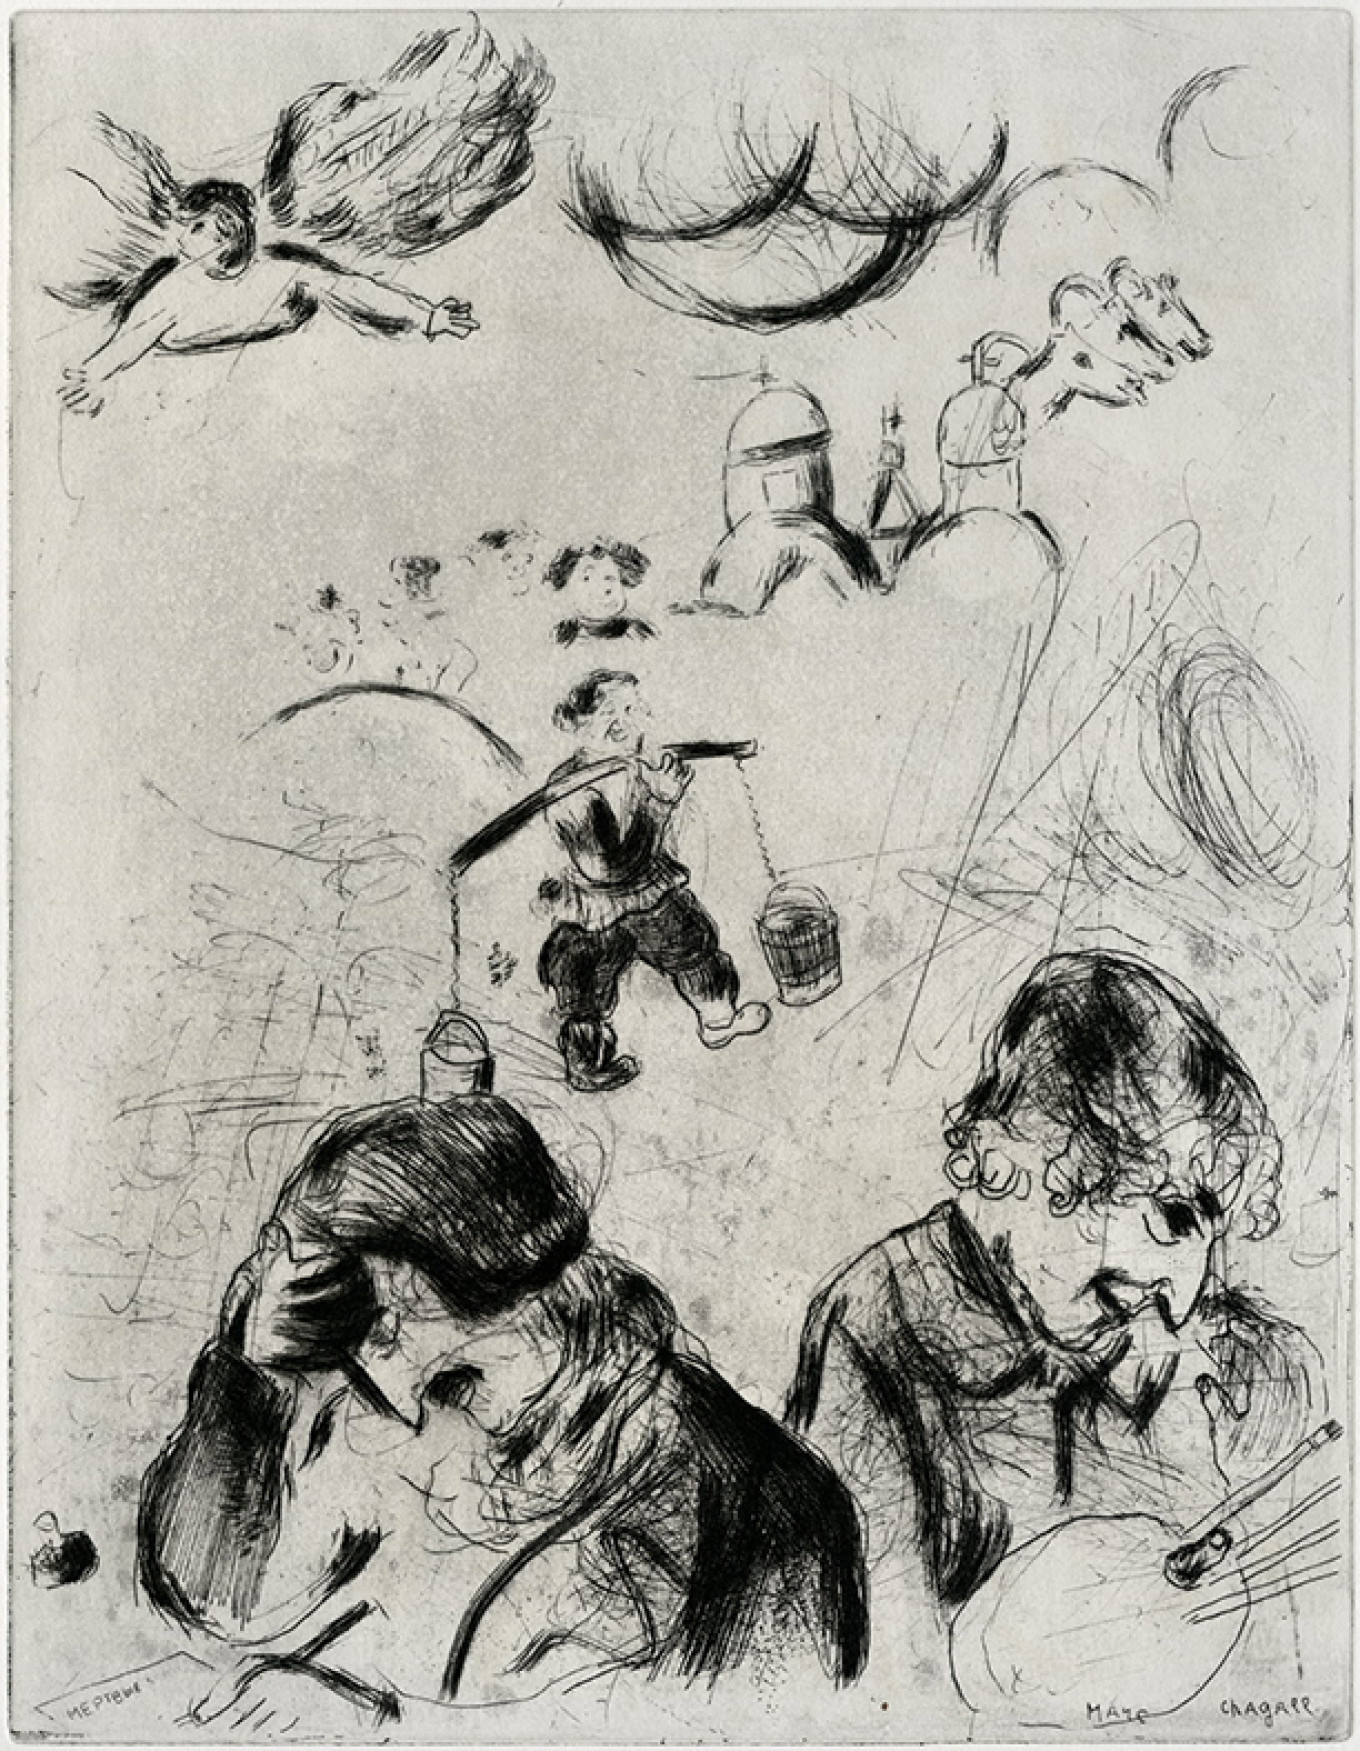 """Chagall Drawing 'Dead Souls',"" 1948, lithograph				 				From the collection of B. Fridman"